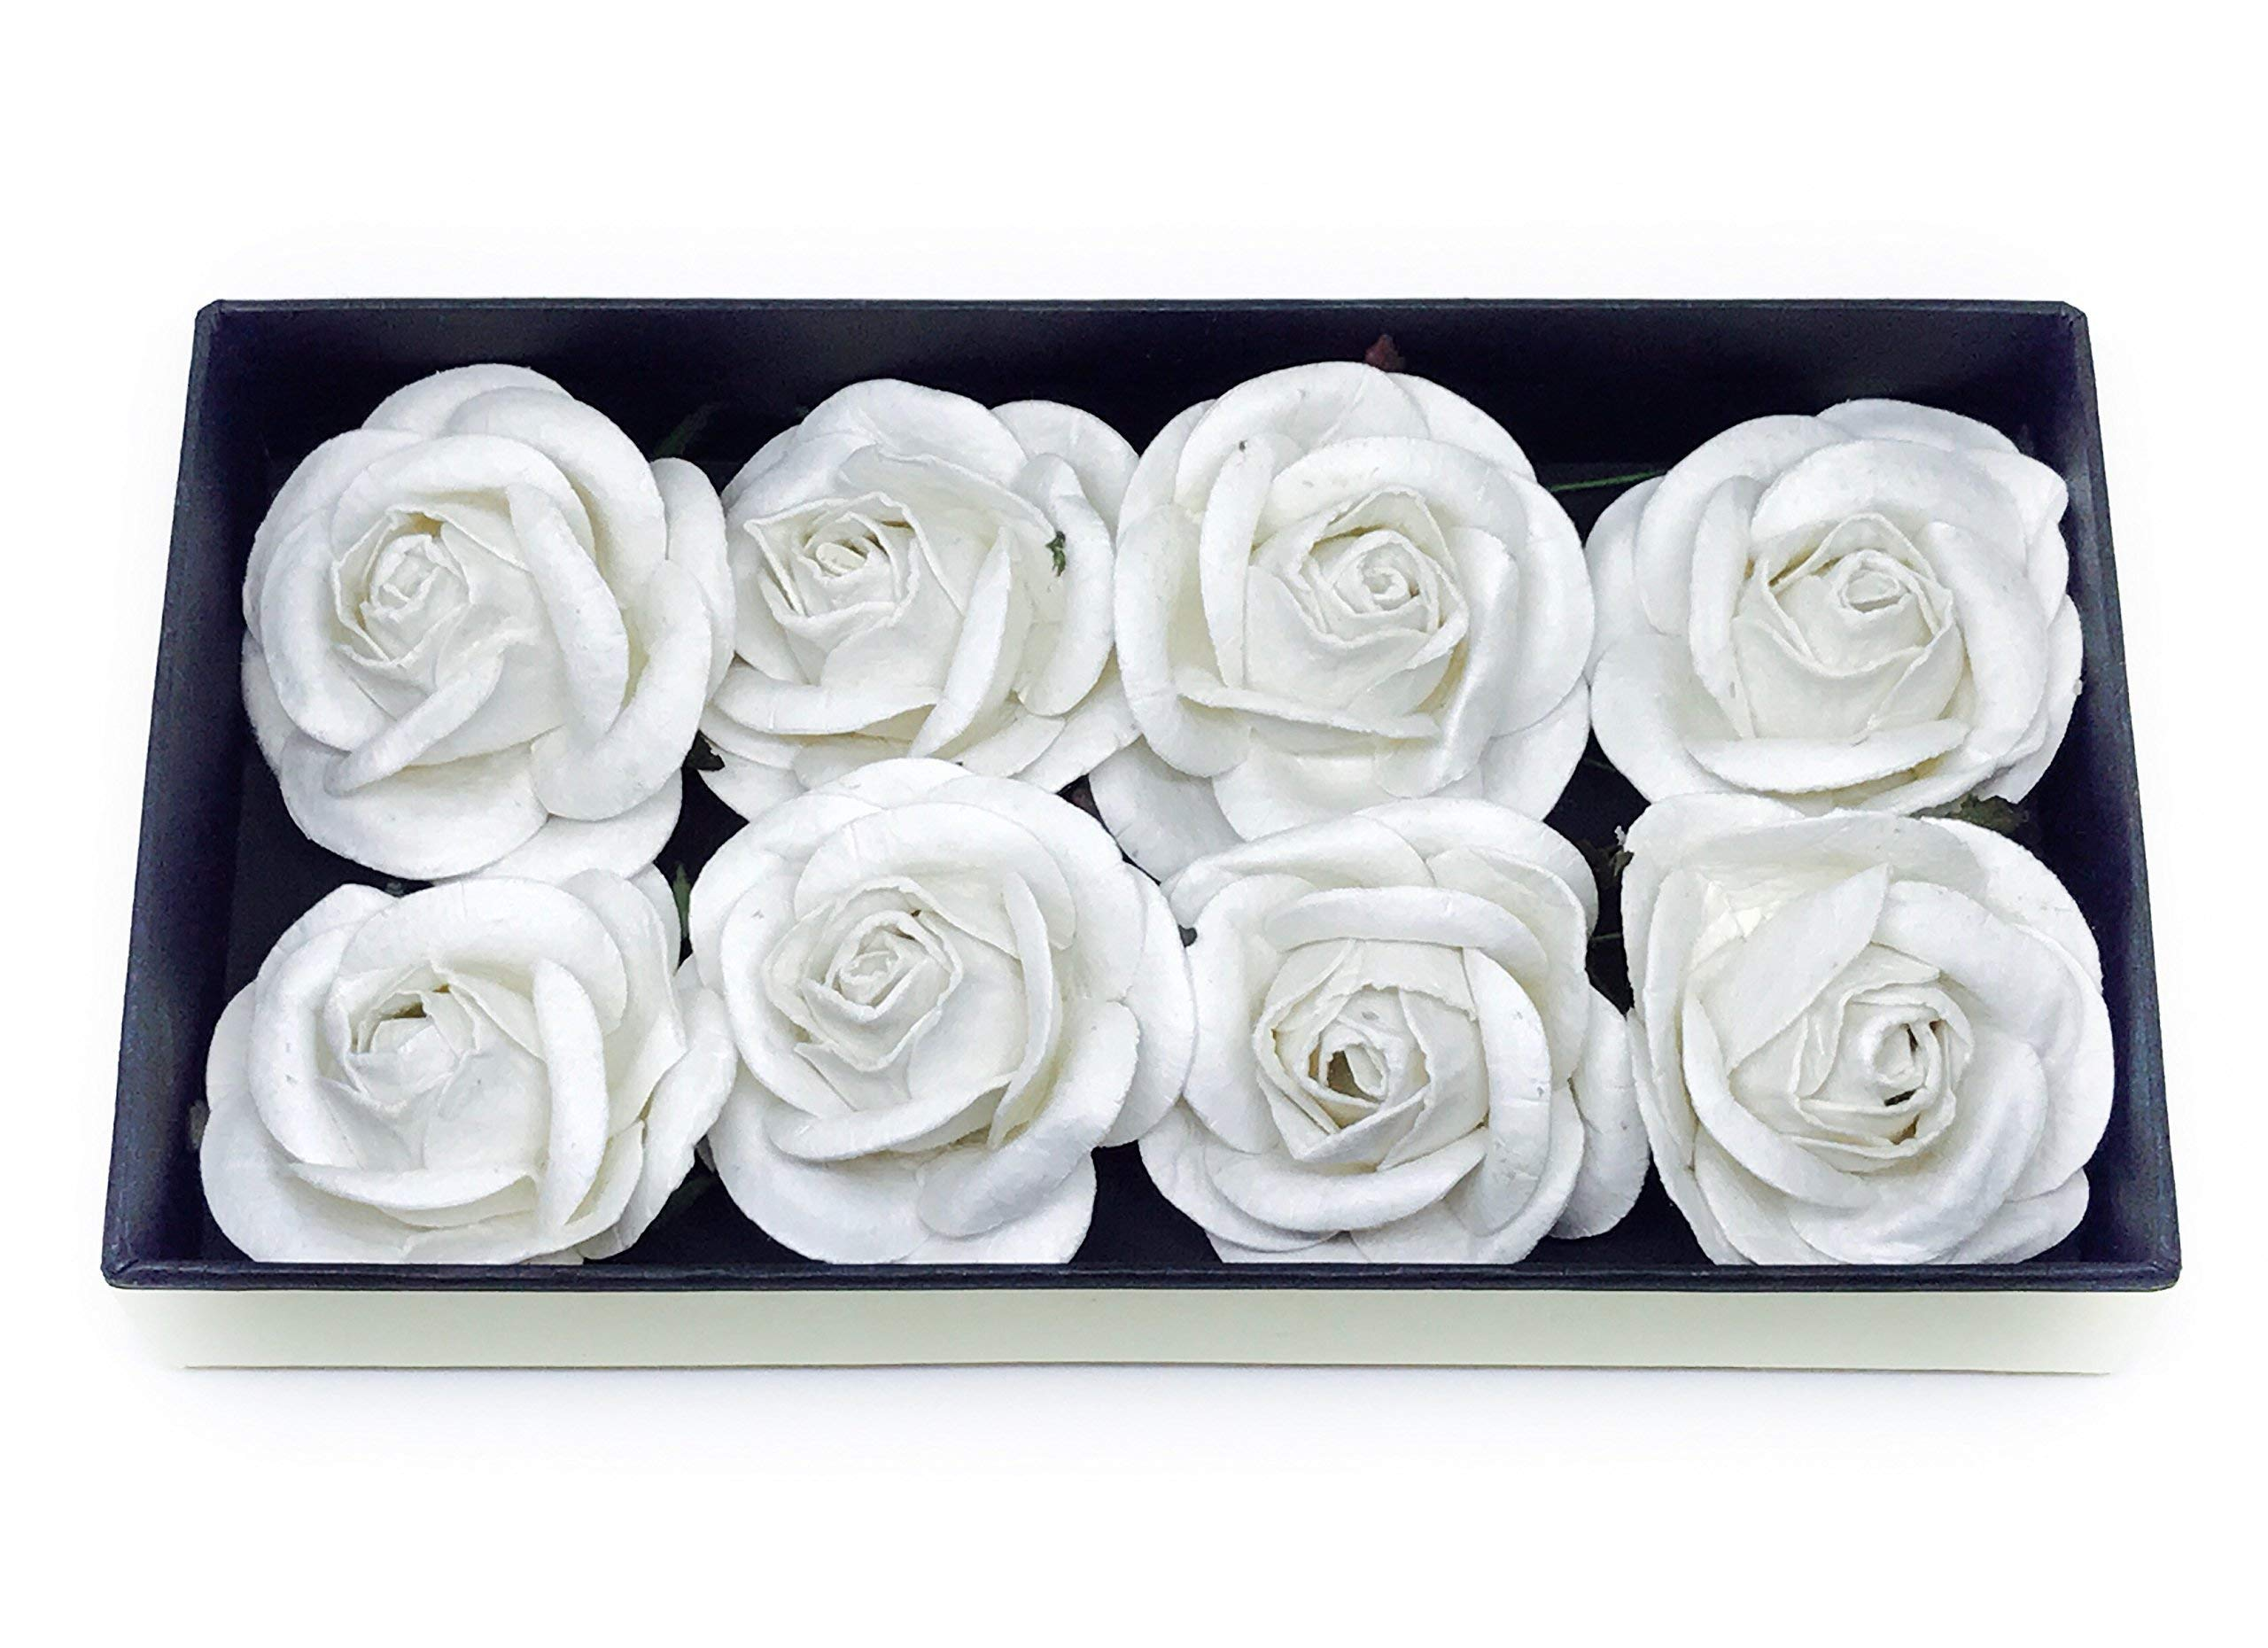 2-White-Paper-Flowers-Paper-Rose-Artificial-Flowers-Fake-Flowers-Artificial-Roses-Paper-Craft-Flowers-Paper-Rose-Flower-Mulberry-Paper-Flowers-10-Pieces